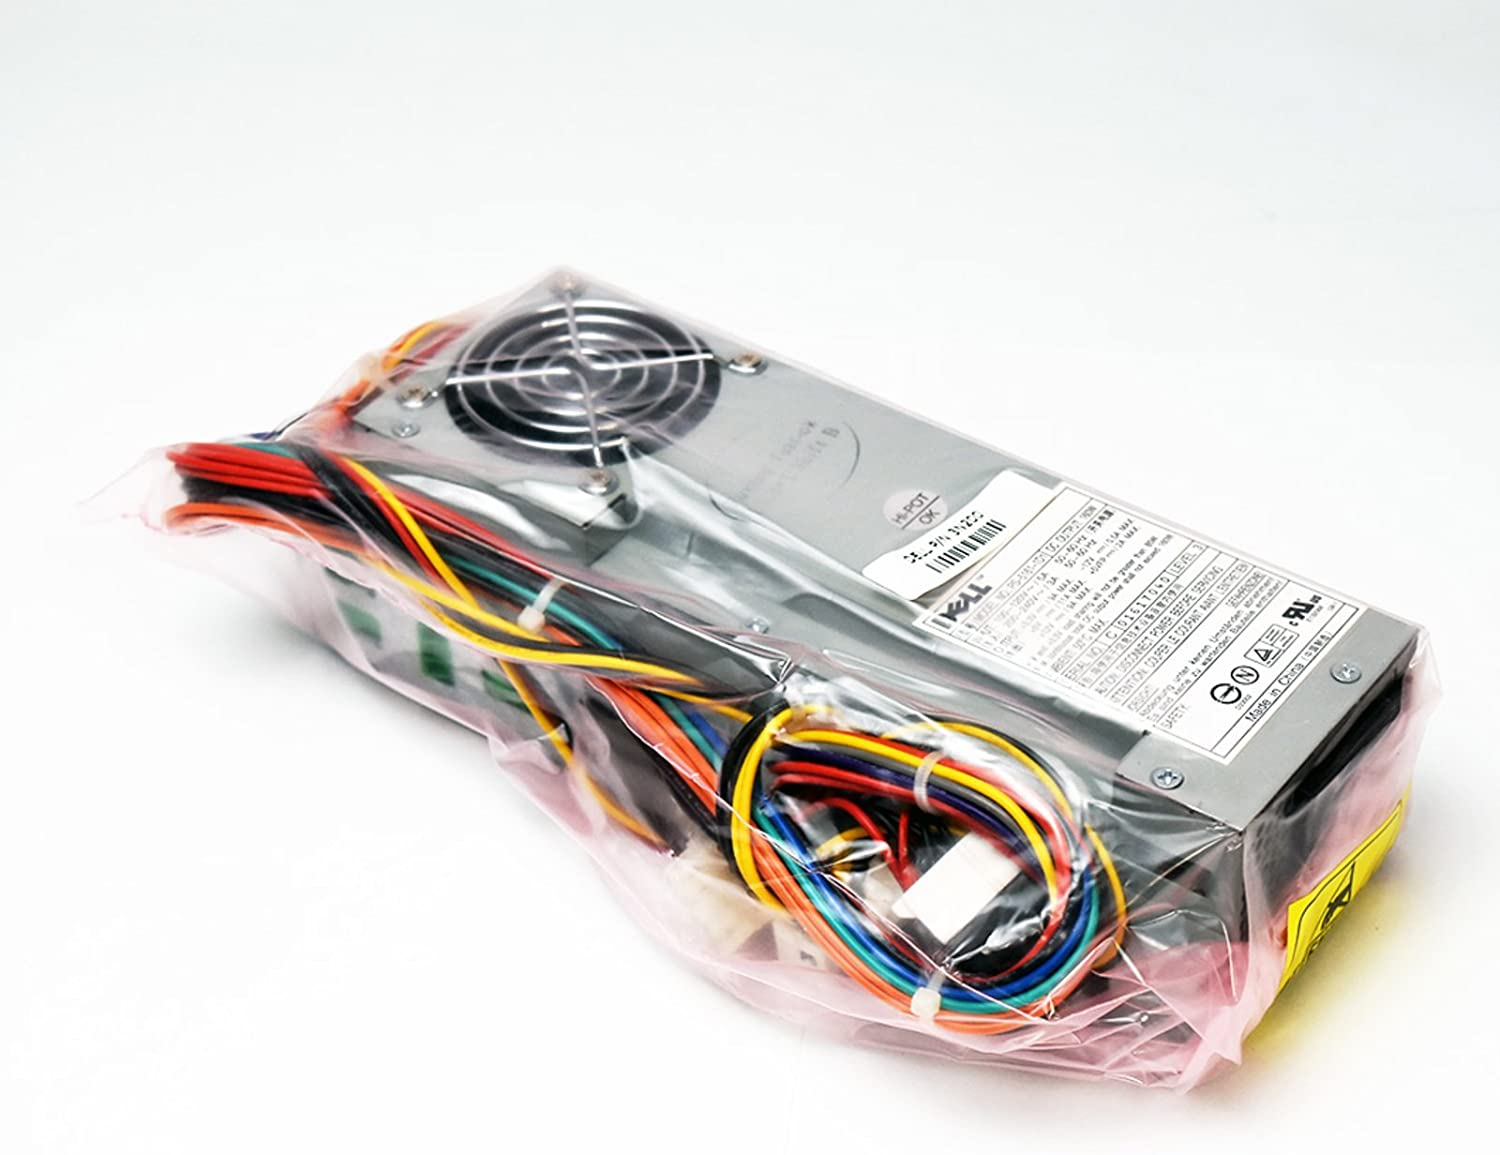 Aquamoon Trading New 3N200 Genuine Dell Optiplex GX150 GX240 GX260 GX270 GX250 Dimension 4500C 4600C SFF 160W PFC Power Supply Unit PS-5161-1D1 Power Factor Correction PSU + Harness P2171 3Y147 P0813